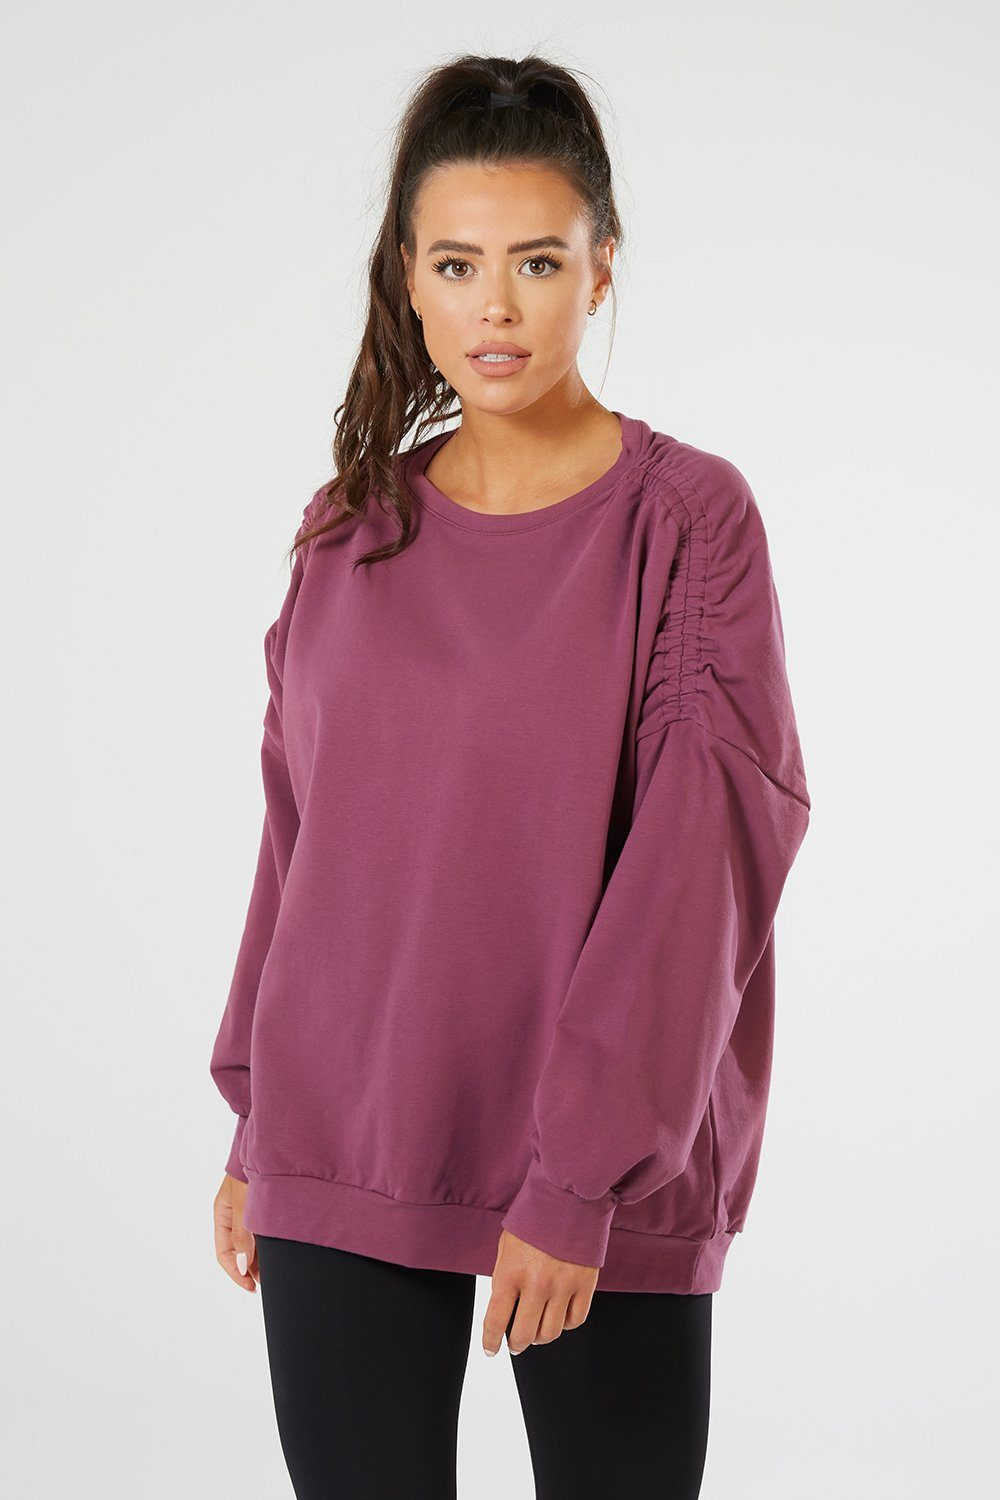 Willow Sweatshirt